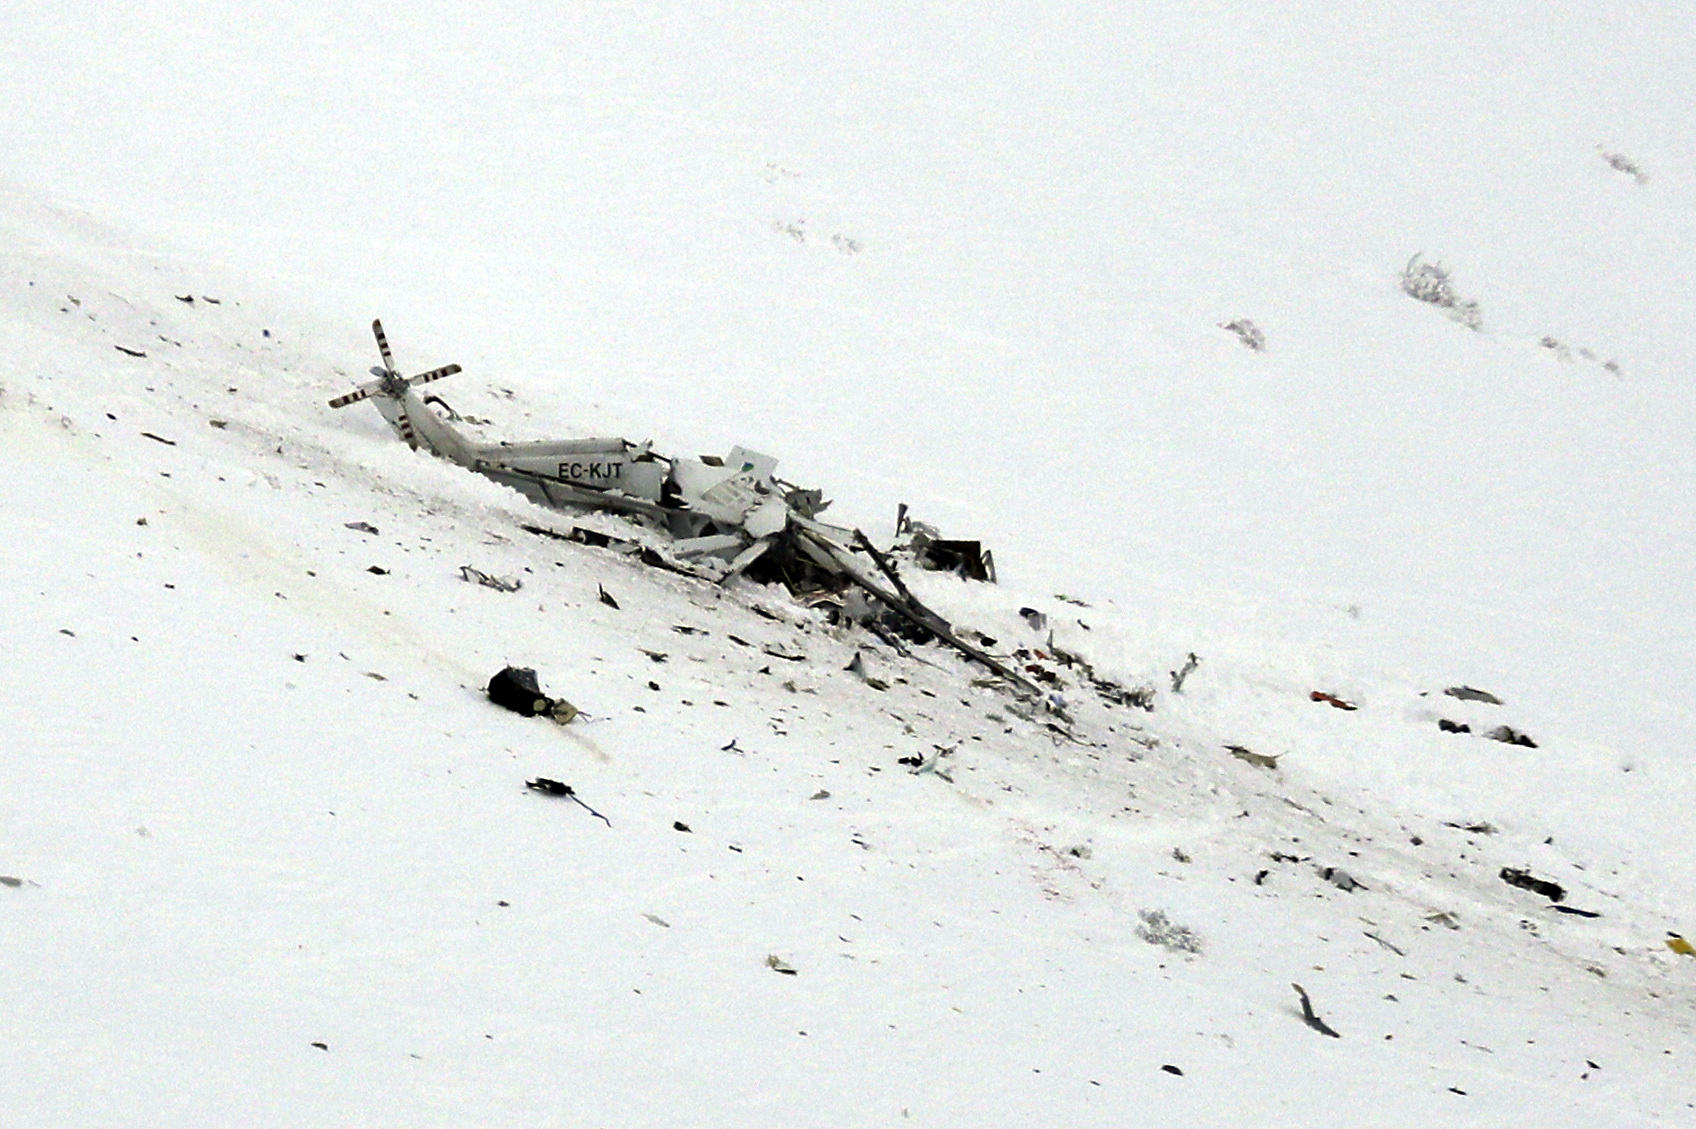 Rigopiano hotel avalanche first funerals as search goes on bbc news - The Wreckage Of A Helicopter Lies In The Snow After Crashing Tuesday In The Campo Felice Ski Area Of Central Italy